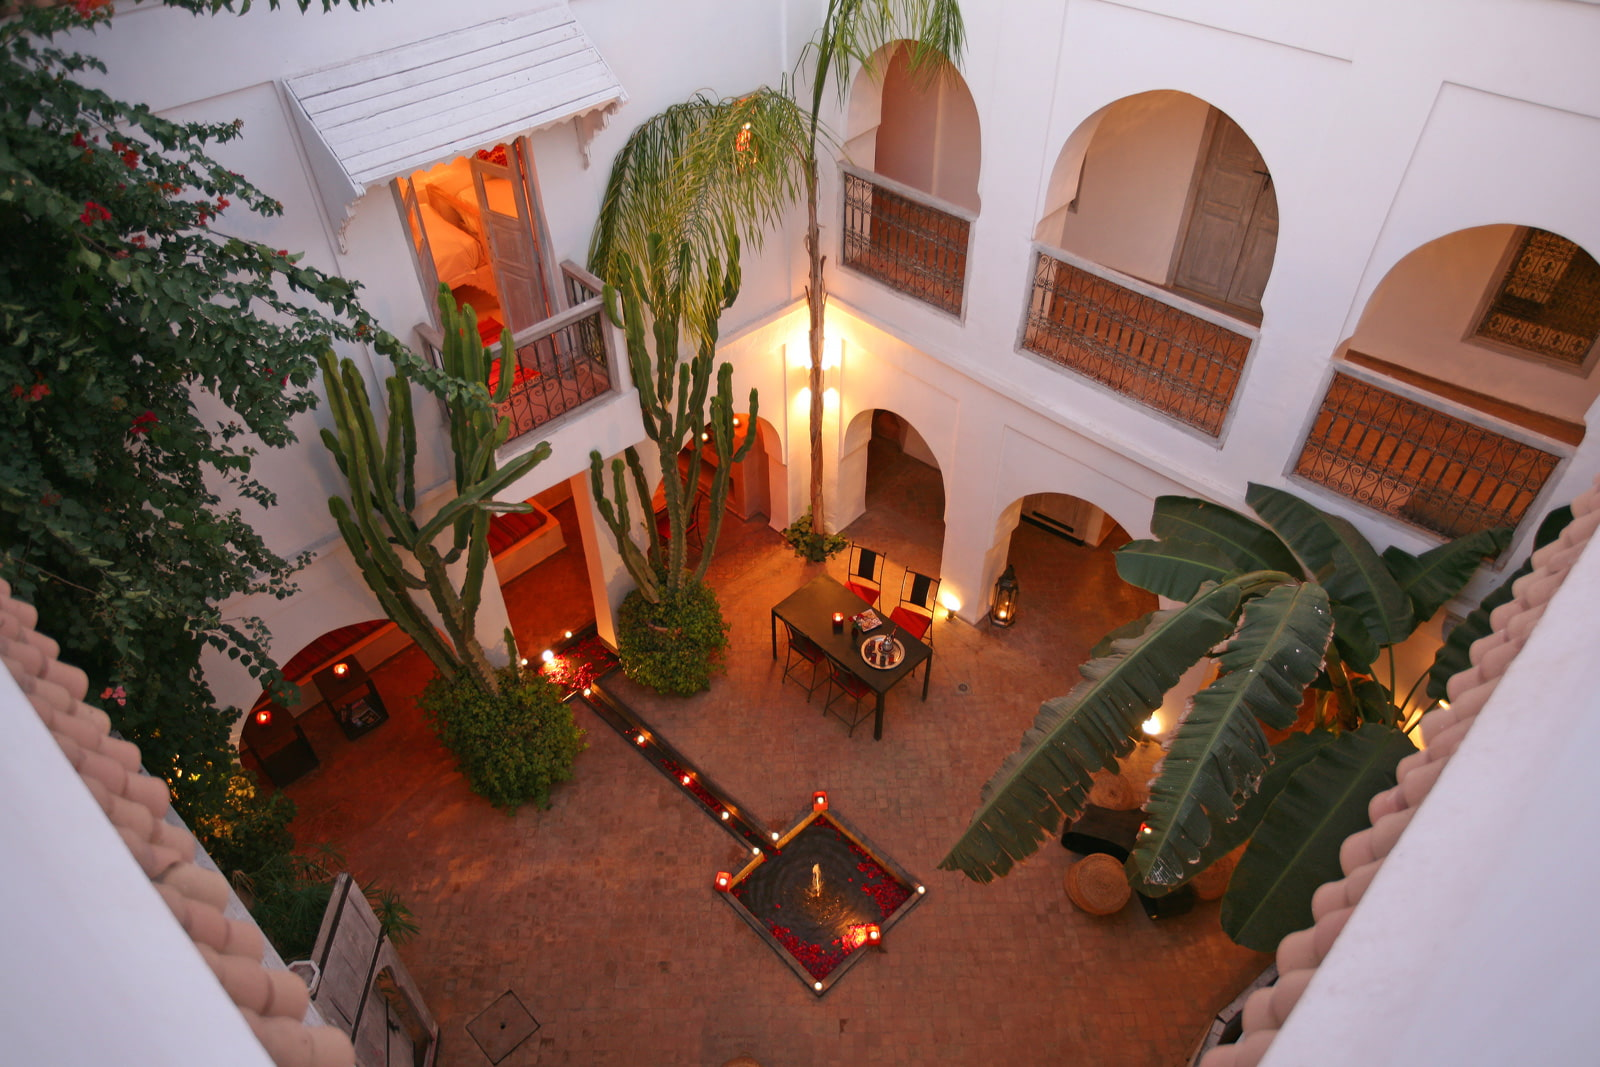 Moroccan courtyard with plants